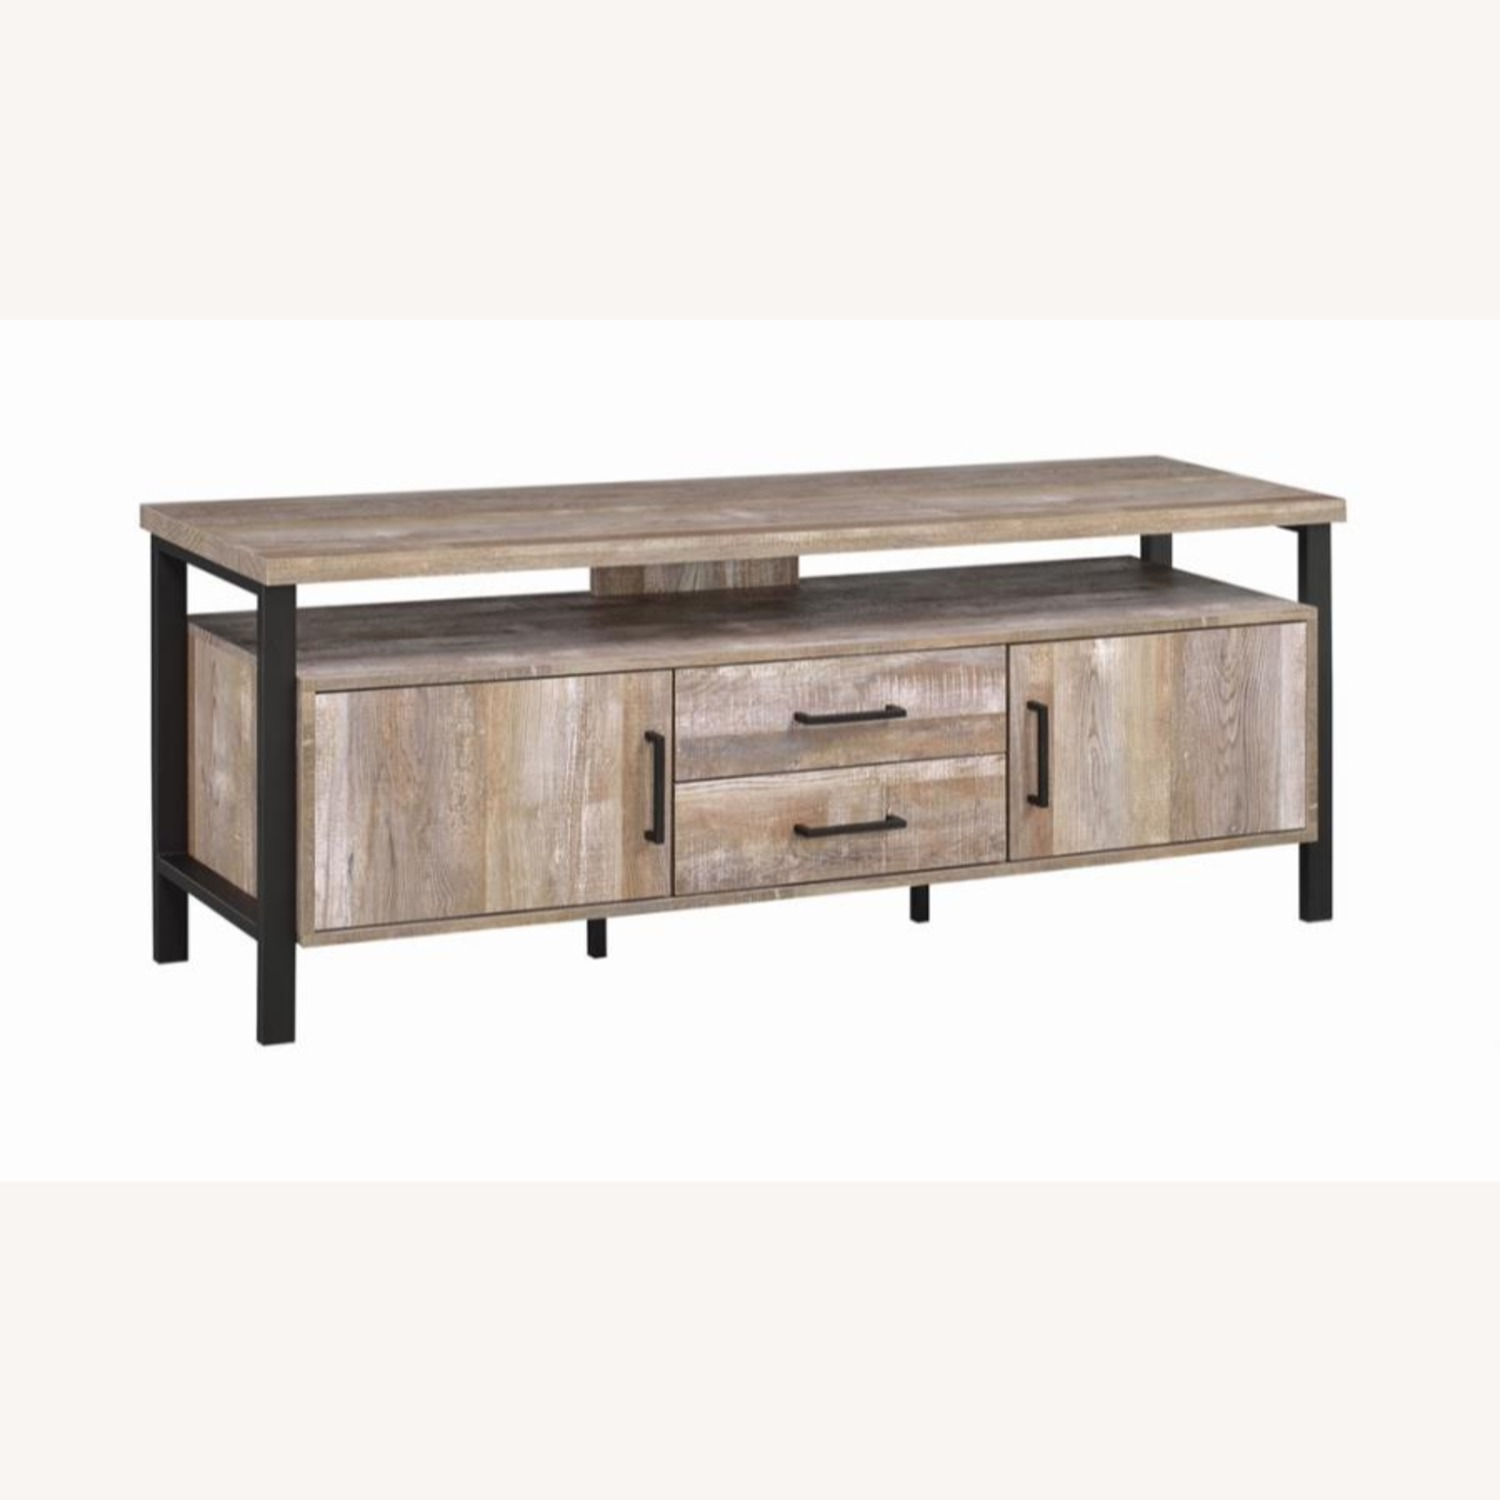 TV Console In Weathered Oak W/ Storage & Shelves - image-0